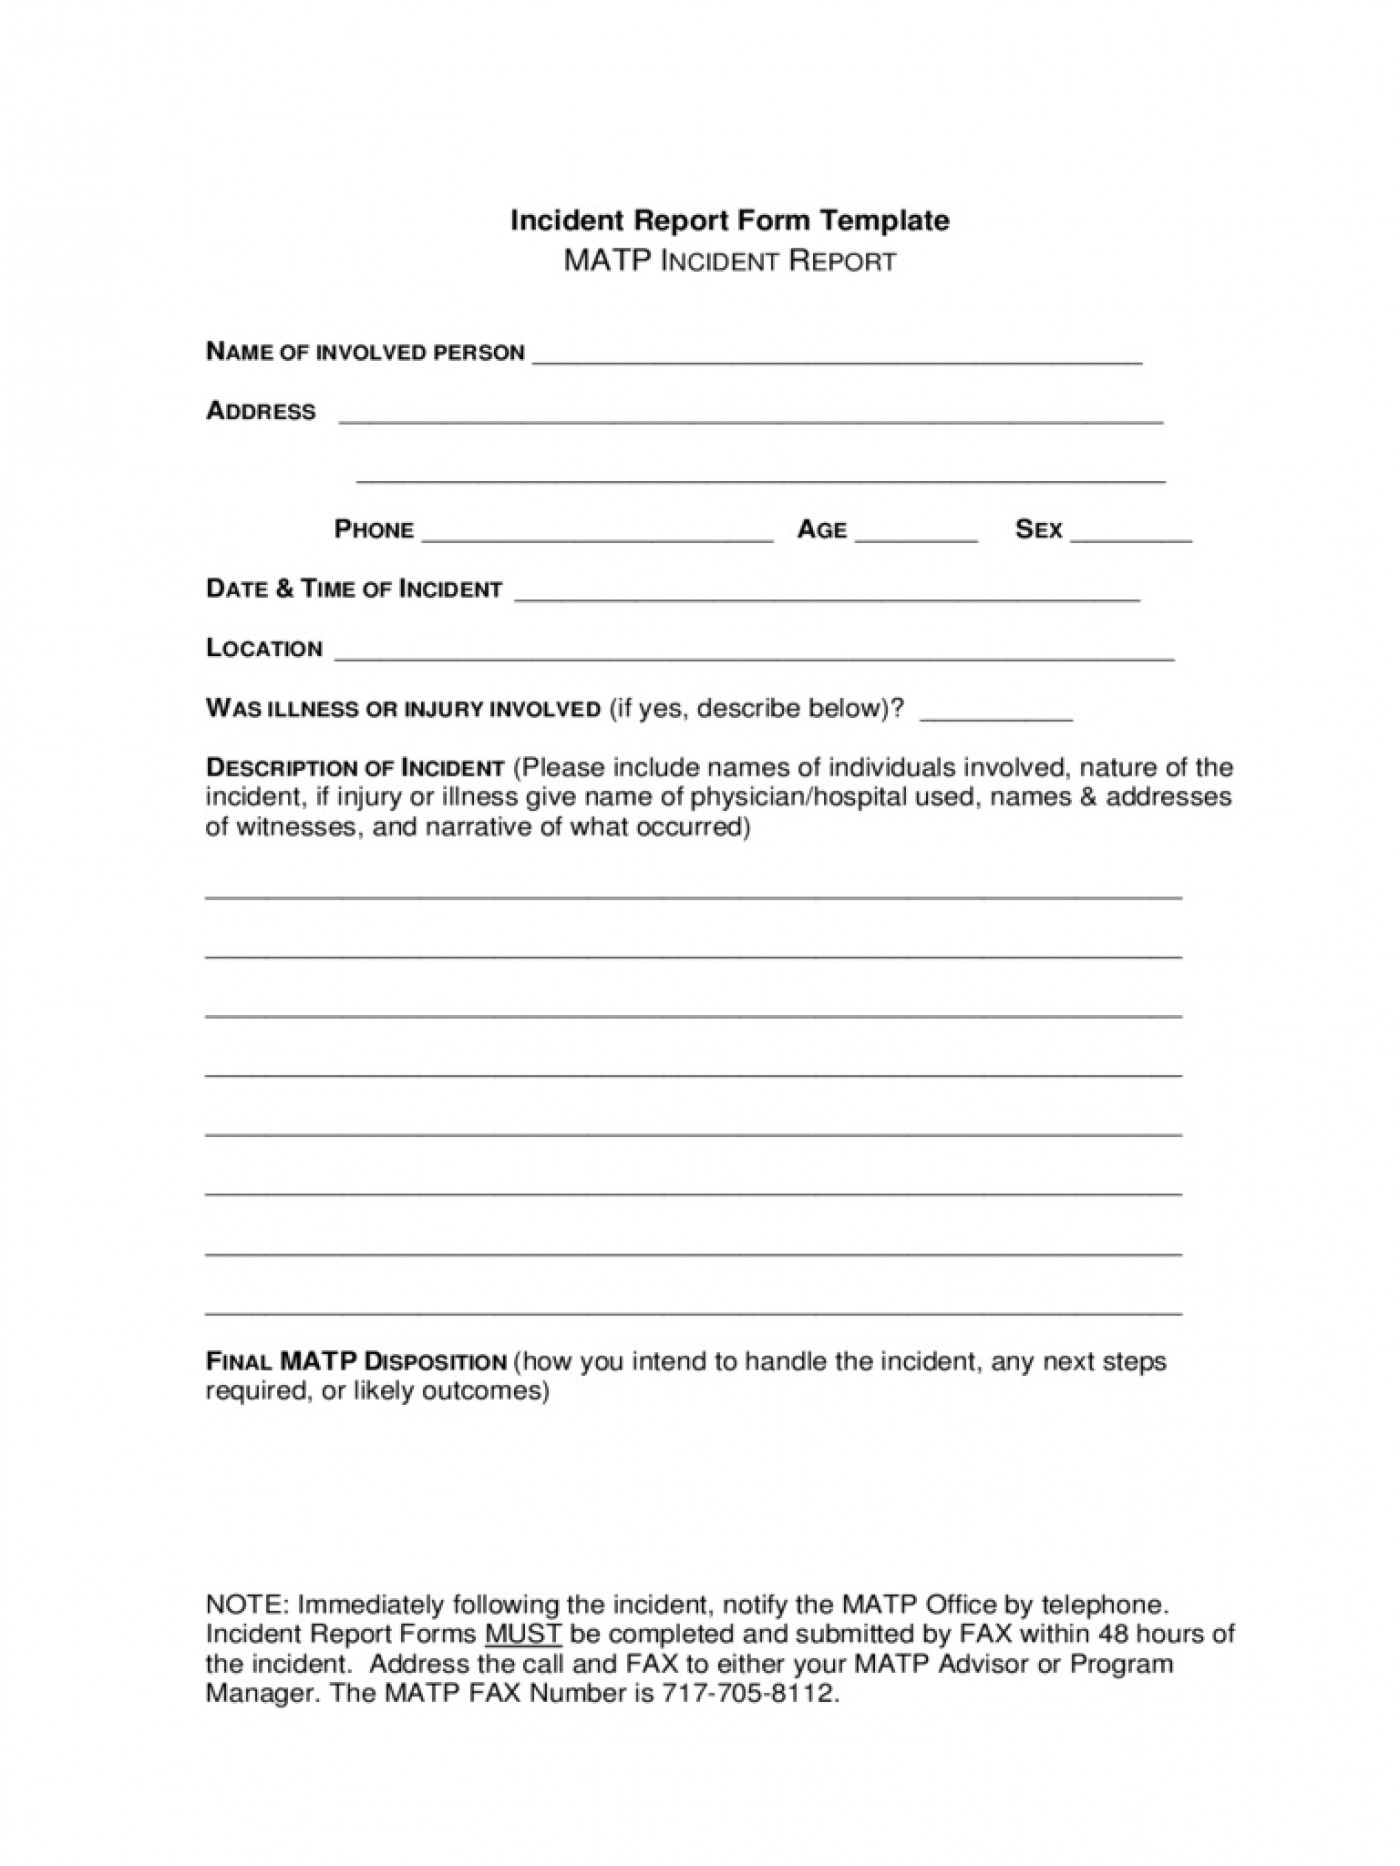 Incident Report Form Template Word New  Downloadable Free1400